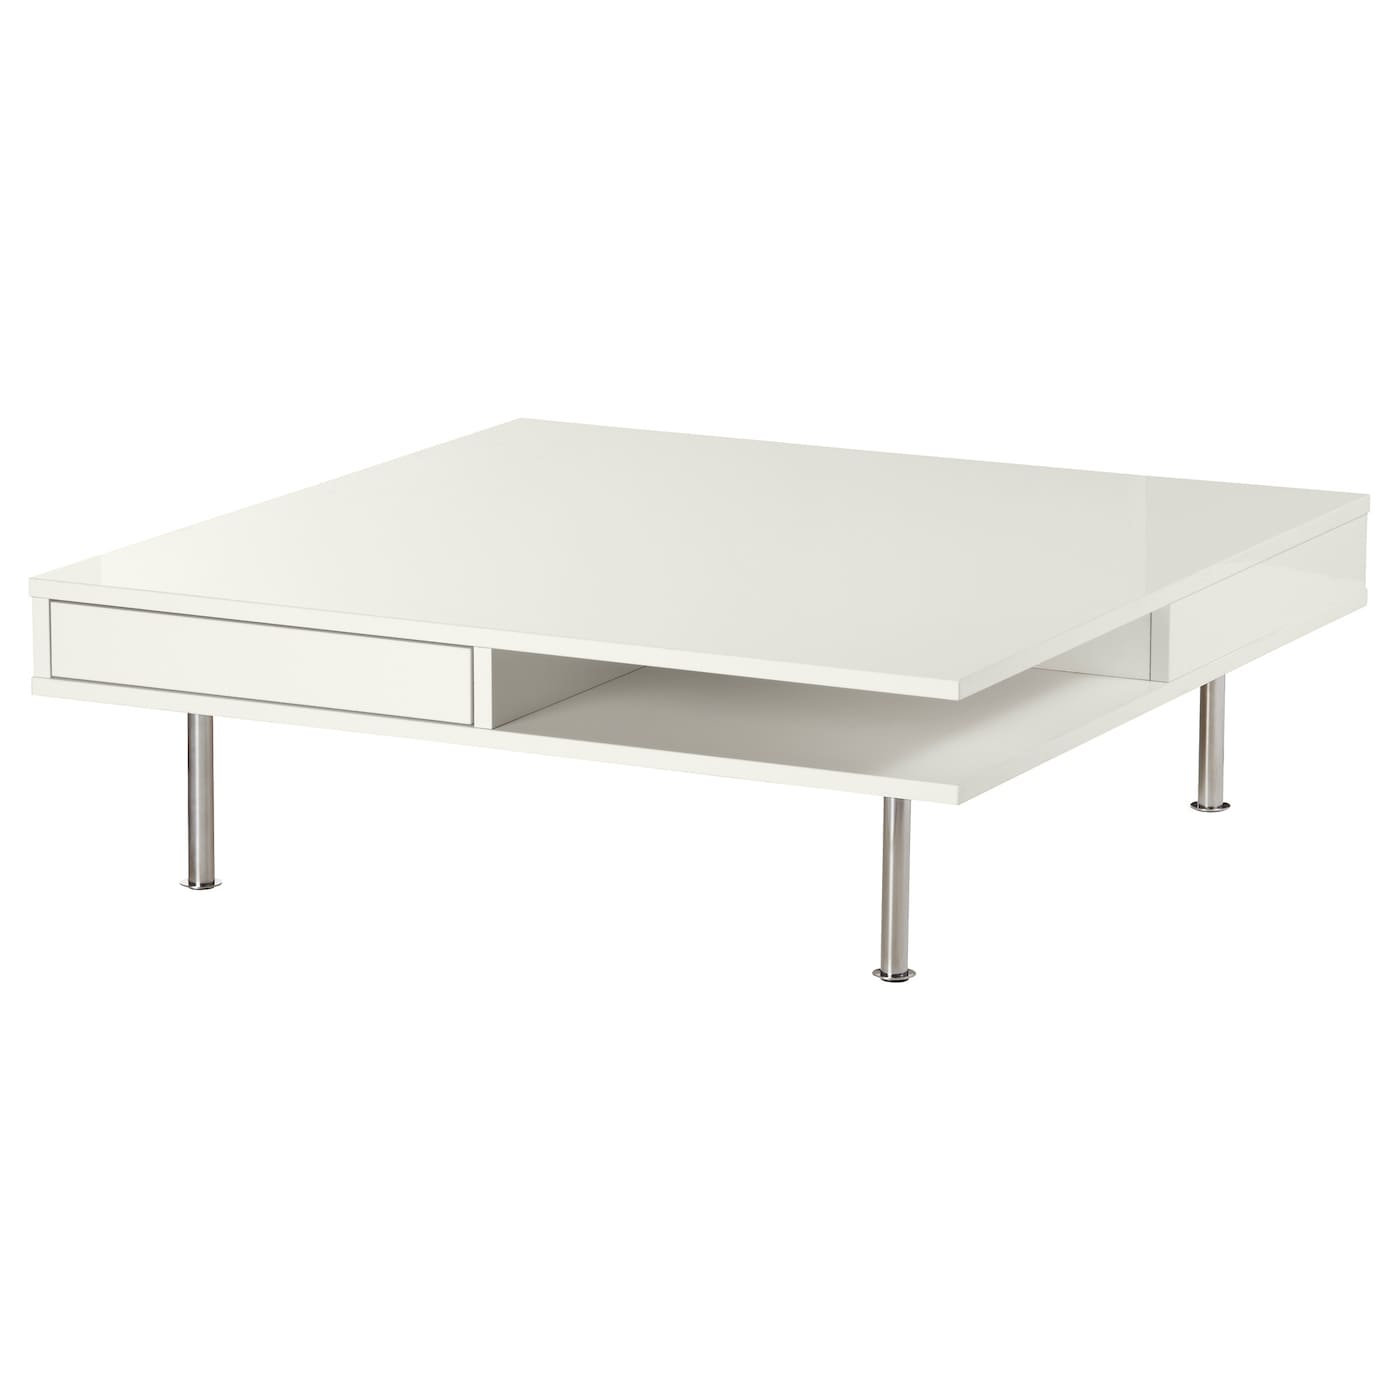 Buy Tofteryd Coffee Table High Gloss White Online Ikea